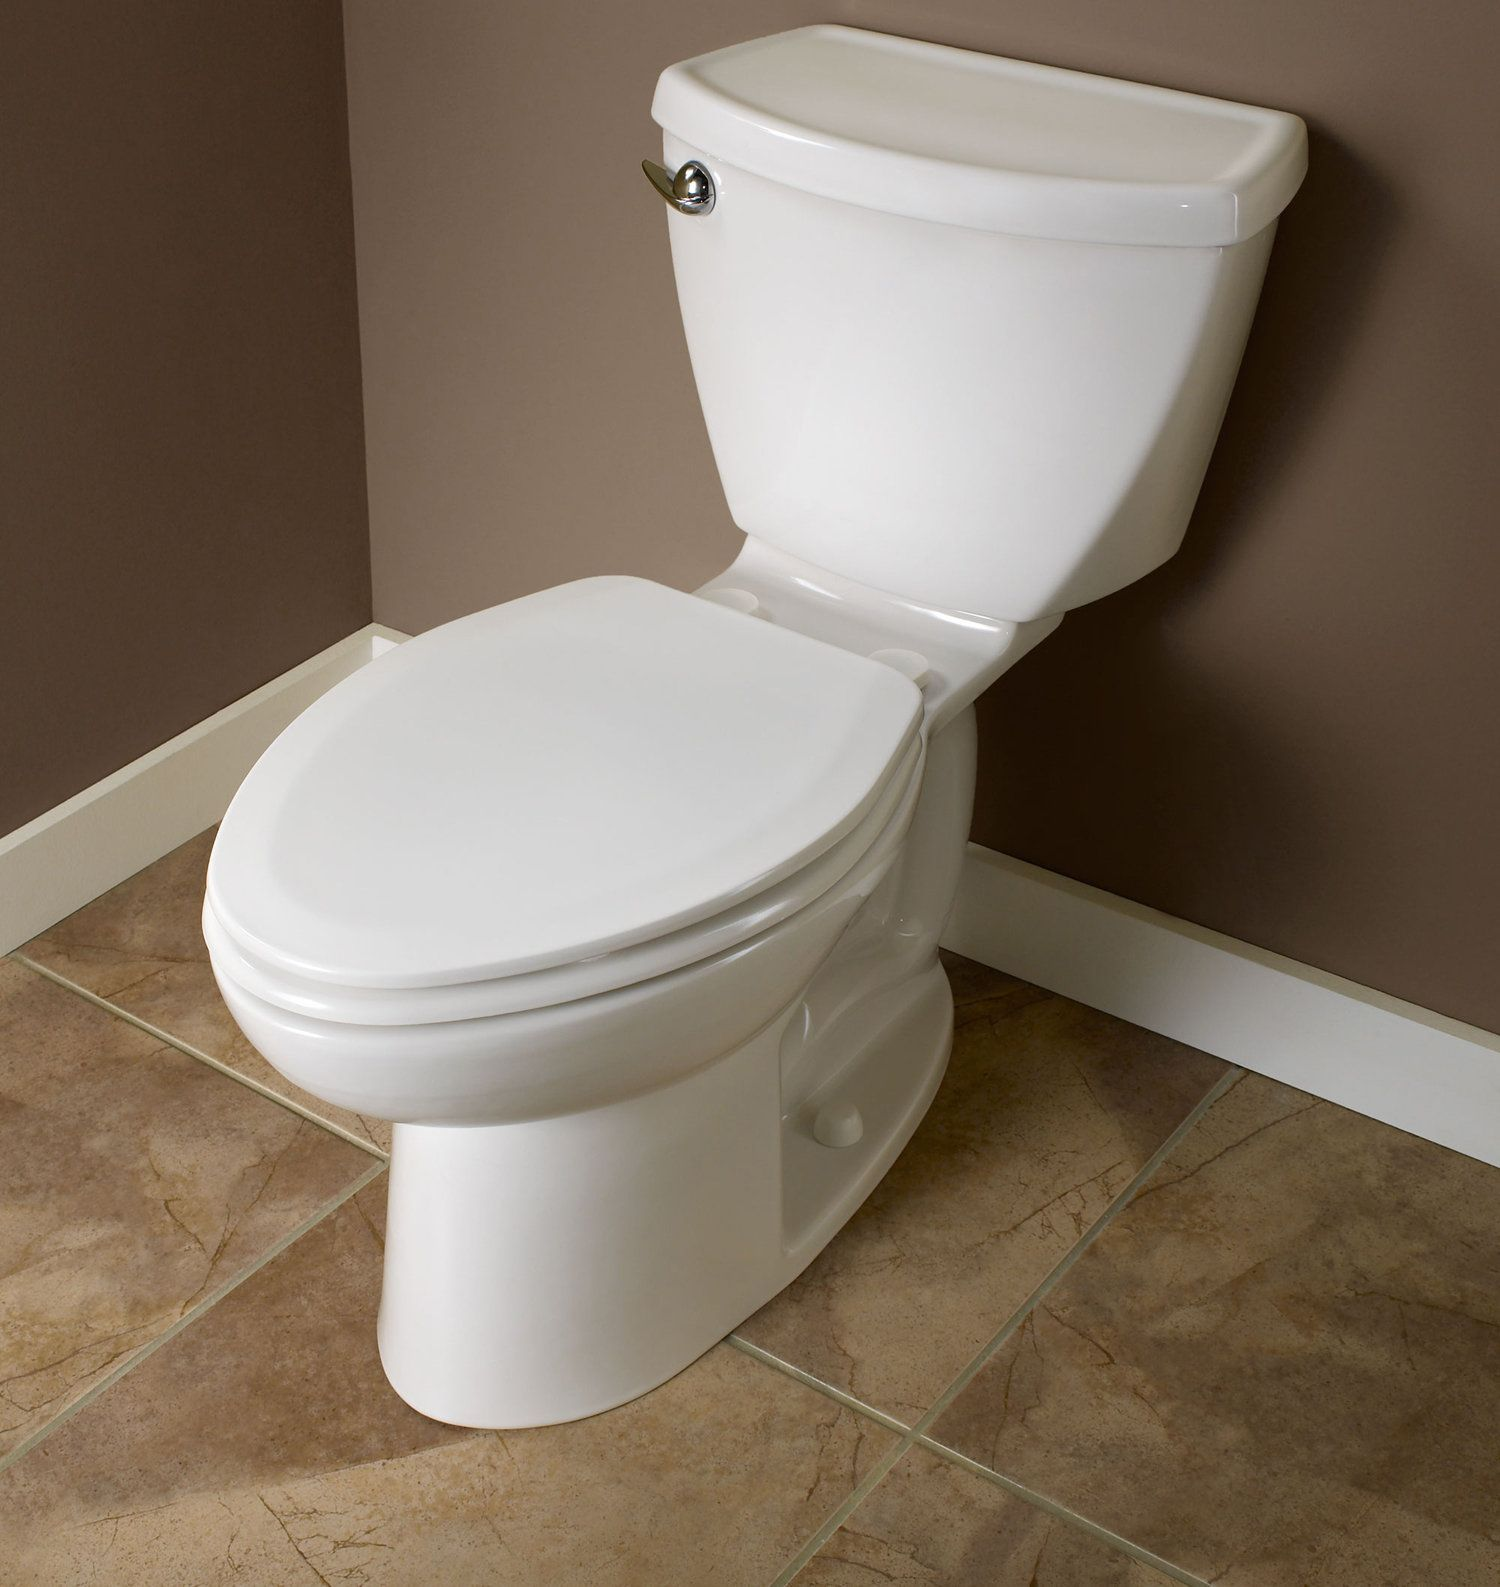 The Toilets Also Come In Various Sizes The Installation Of The Toilets Singapore Requires Particular Measu Elongated Toilet Seat Toilet Seat Cover Toilet Seat